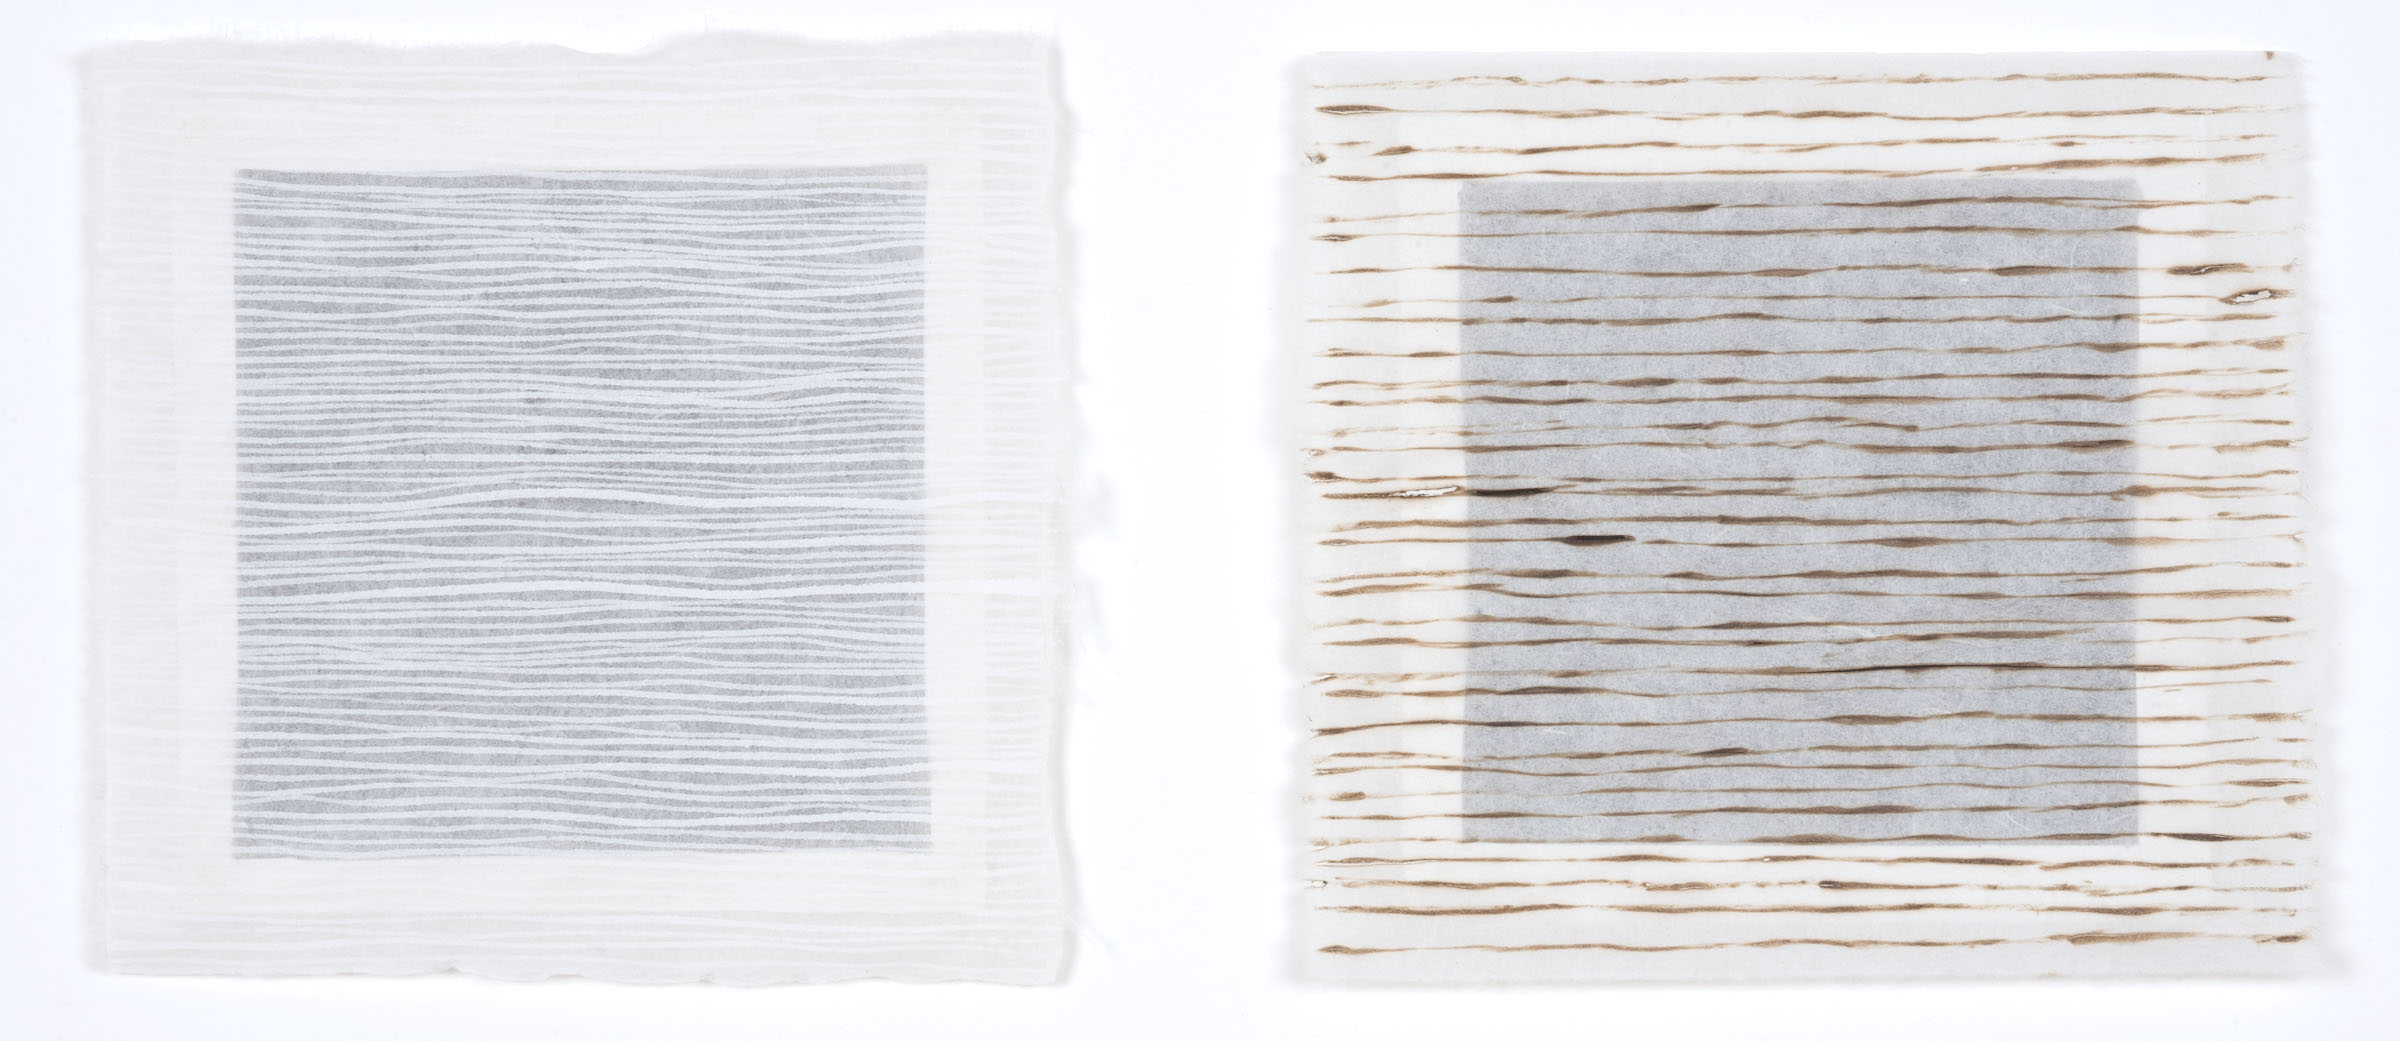 """""""Plus/Minus"""" 2015 white ink and burn marks on rice paper suspended over a black background. Framed, 10""""h x 20""""w."""